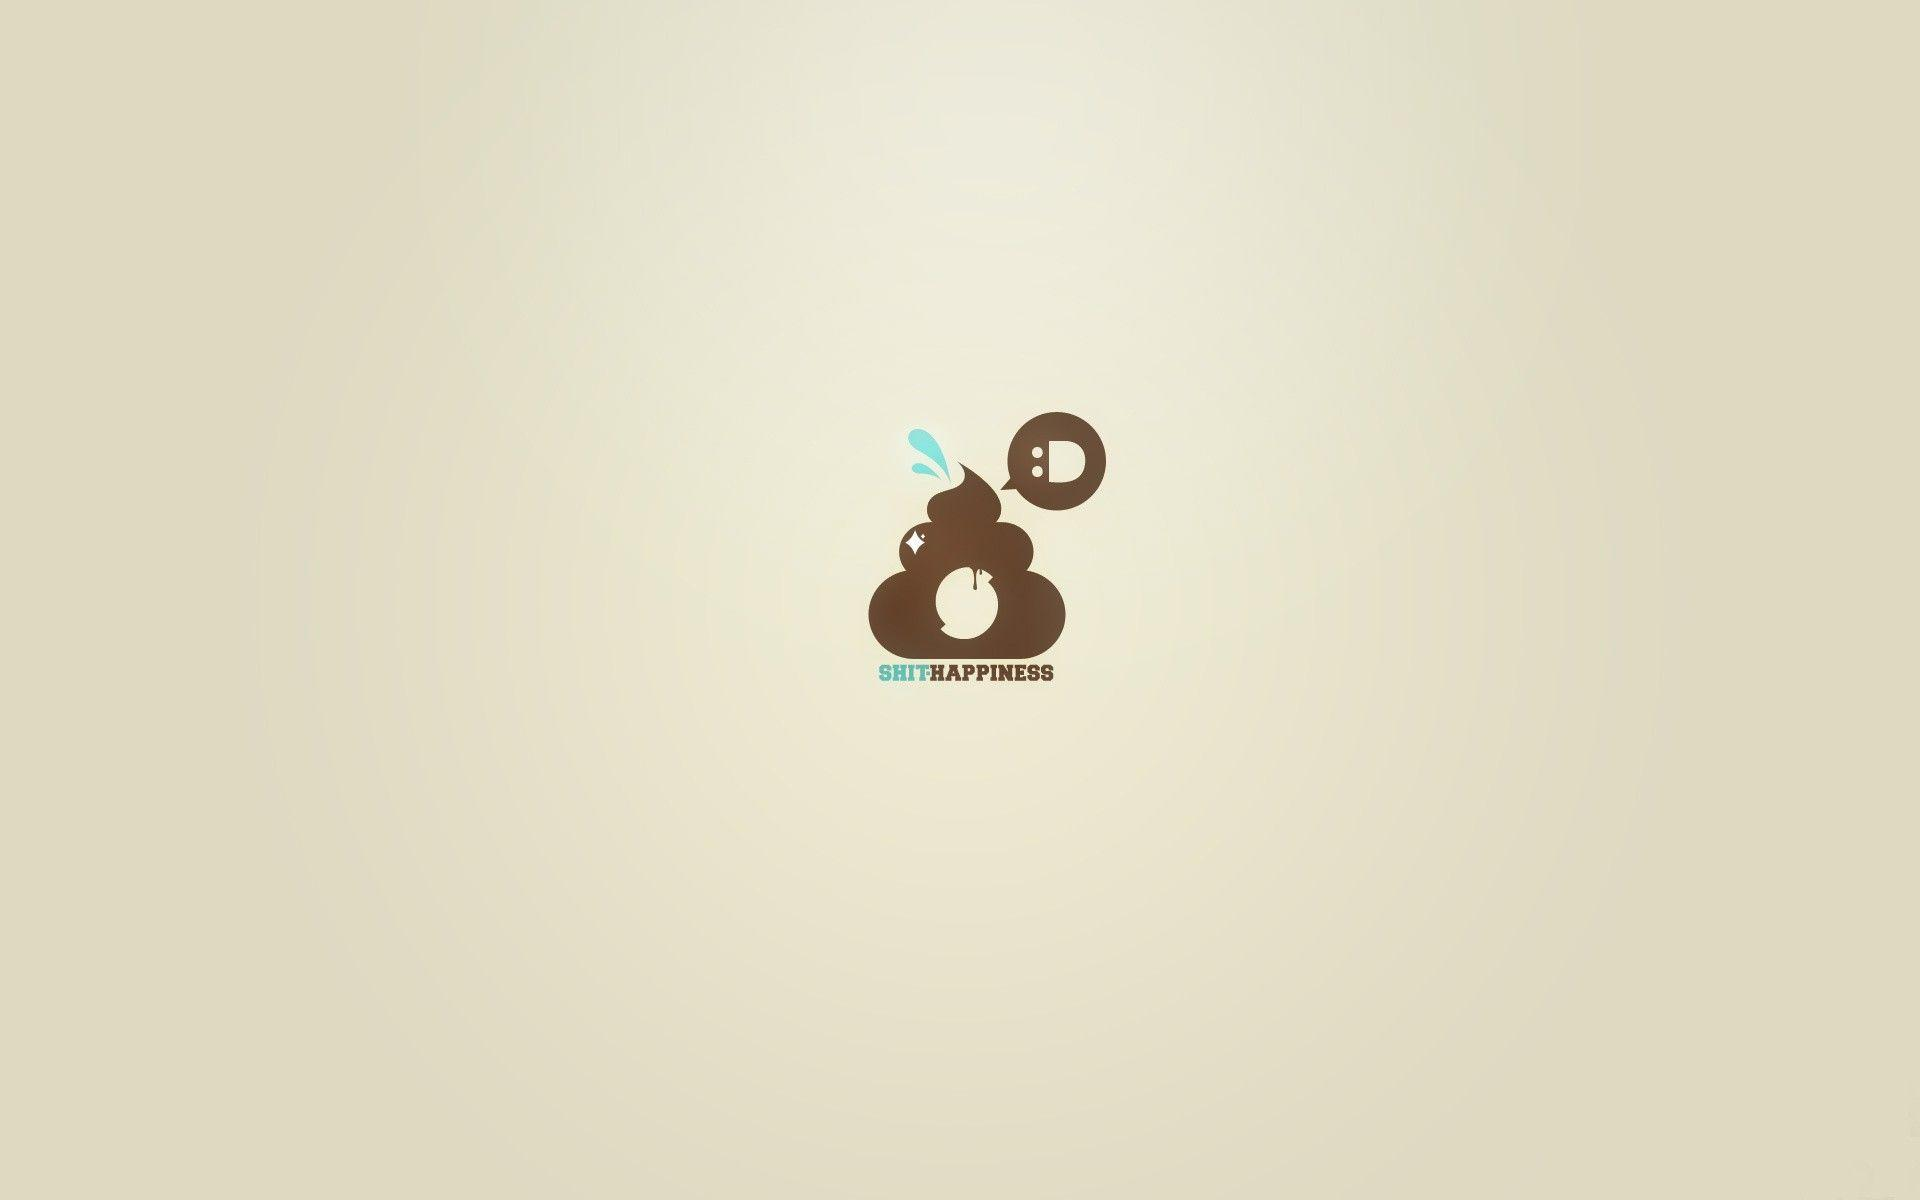 Shit happens | Wallpapers | Pinterest | High quality wallpapers ...